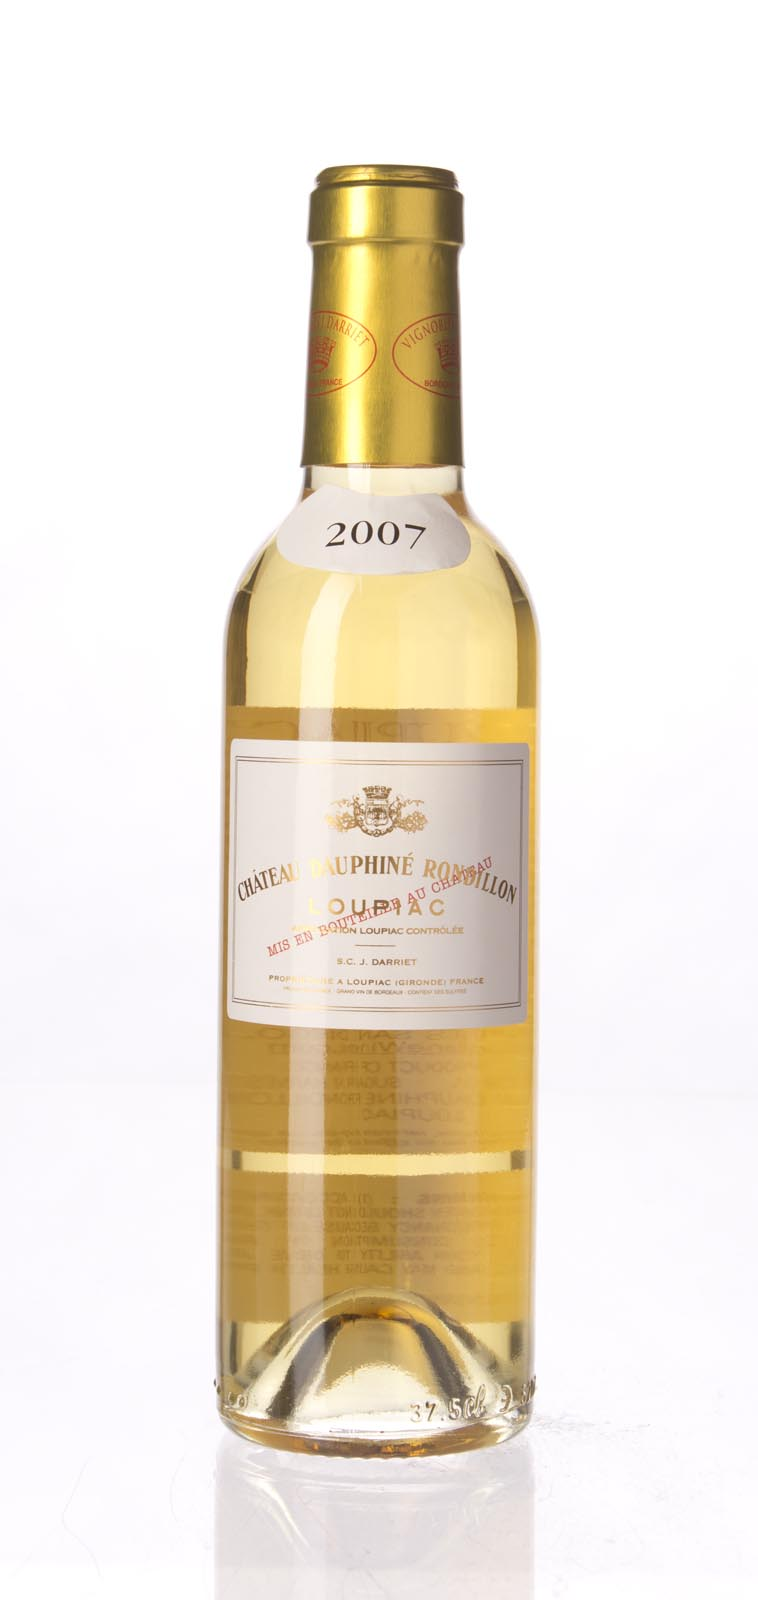 Dauphine Rondillon Loupiac 2007, 375ml () from The BPW - Merchants of rare and fine wines.